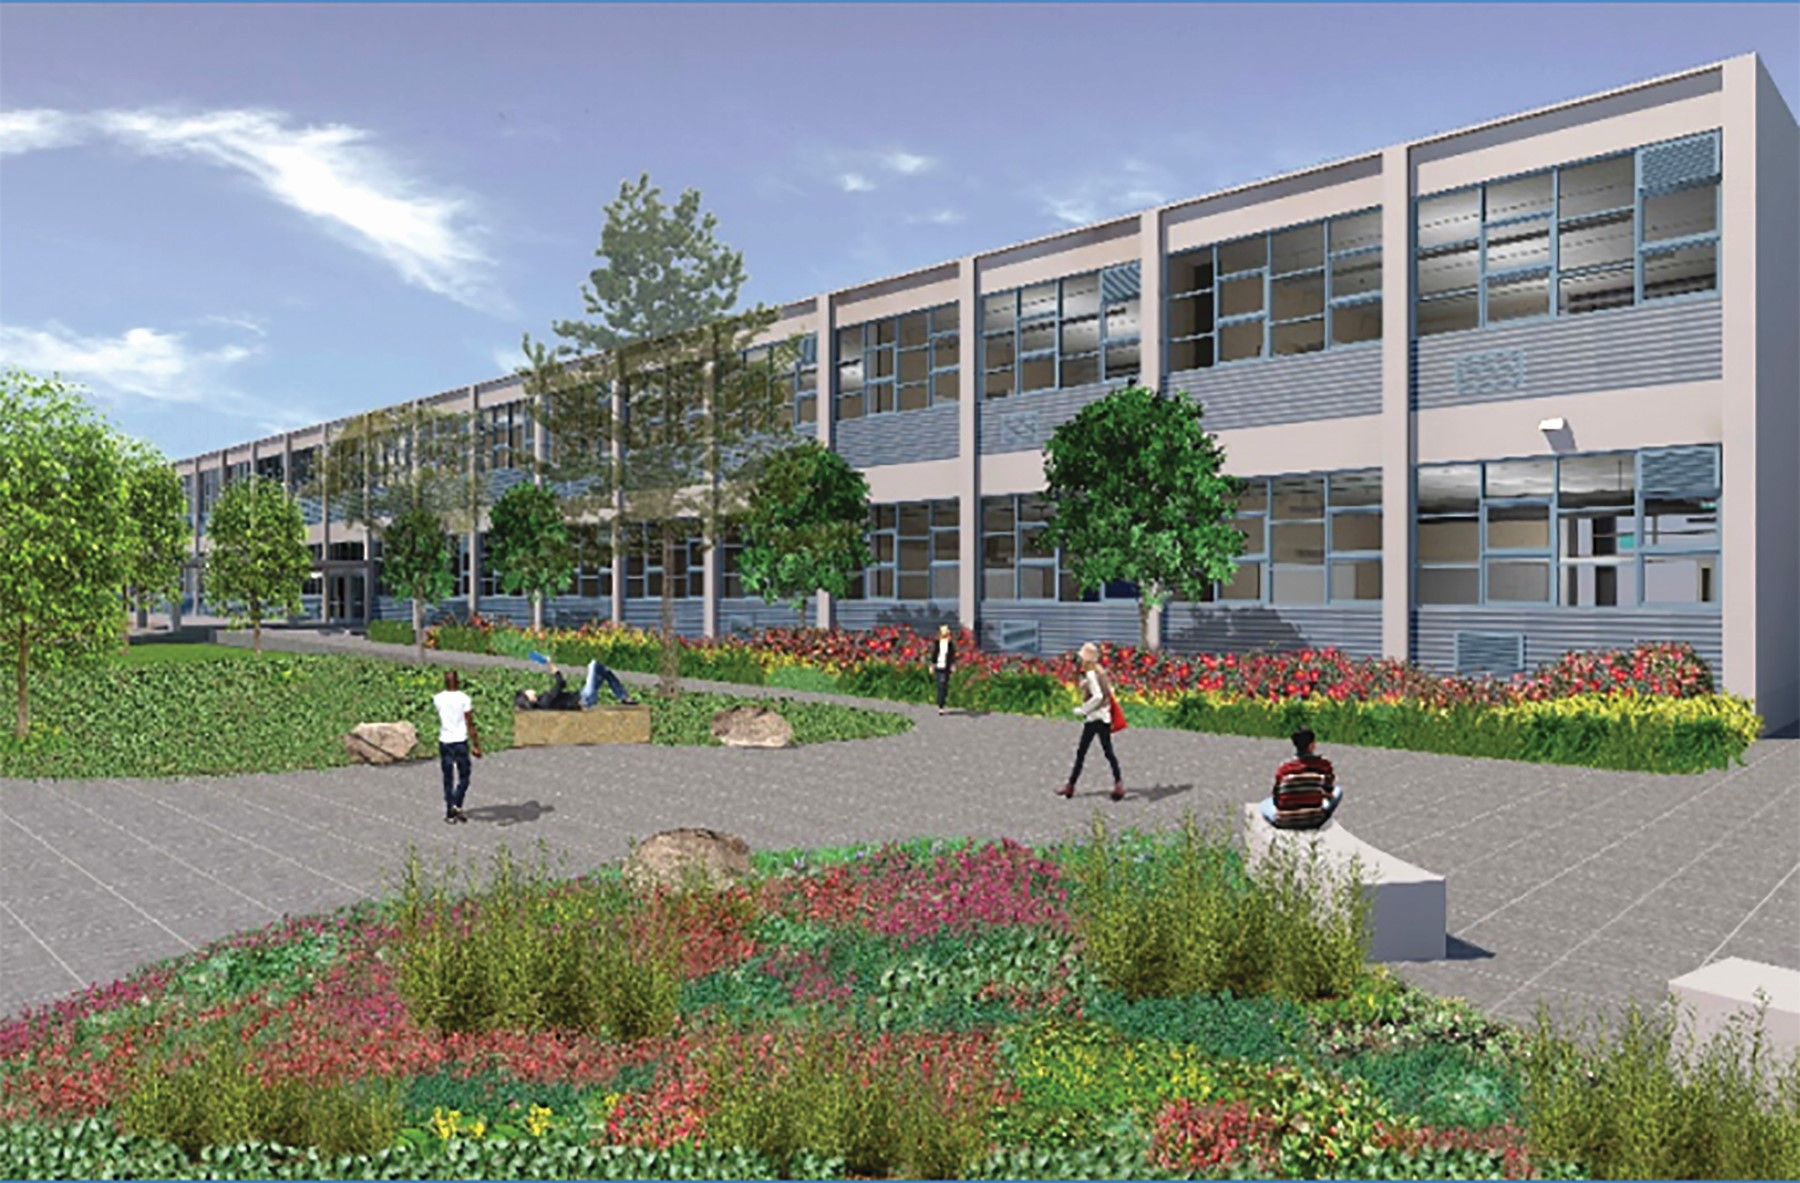 Alameda Unified School District &nbsp&nbsp The school district plans a major renovation of the Encinal Junior & Senior High School campus on Central Avenue. The project will get underway with a groundbreaking tomorrow at 3:15 p.m.